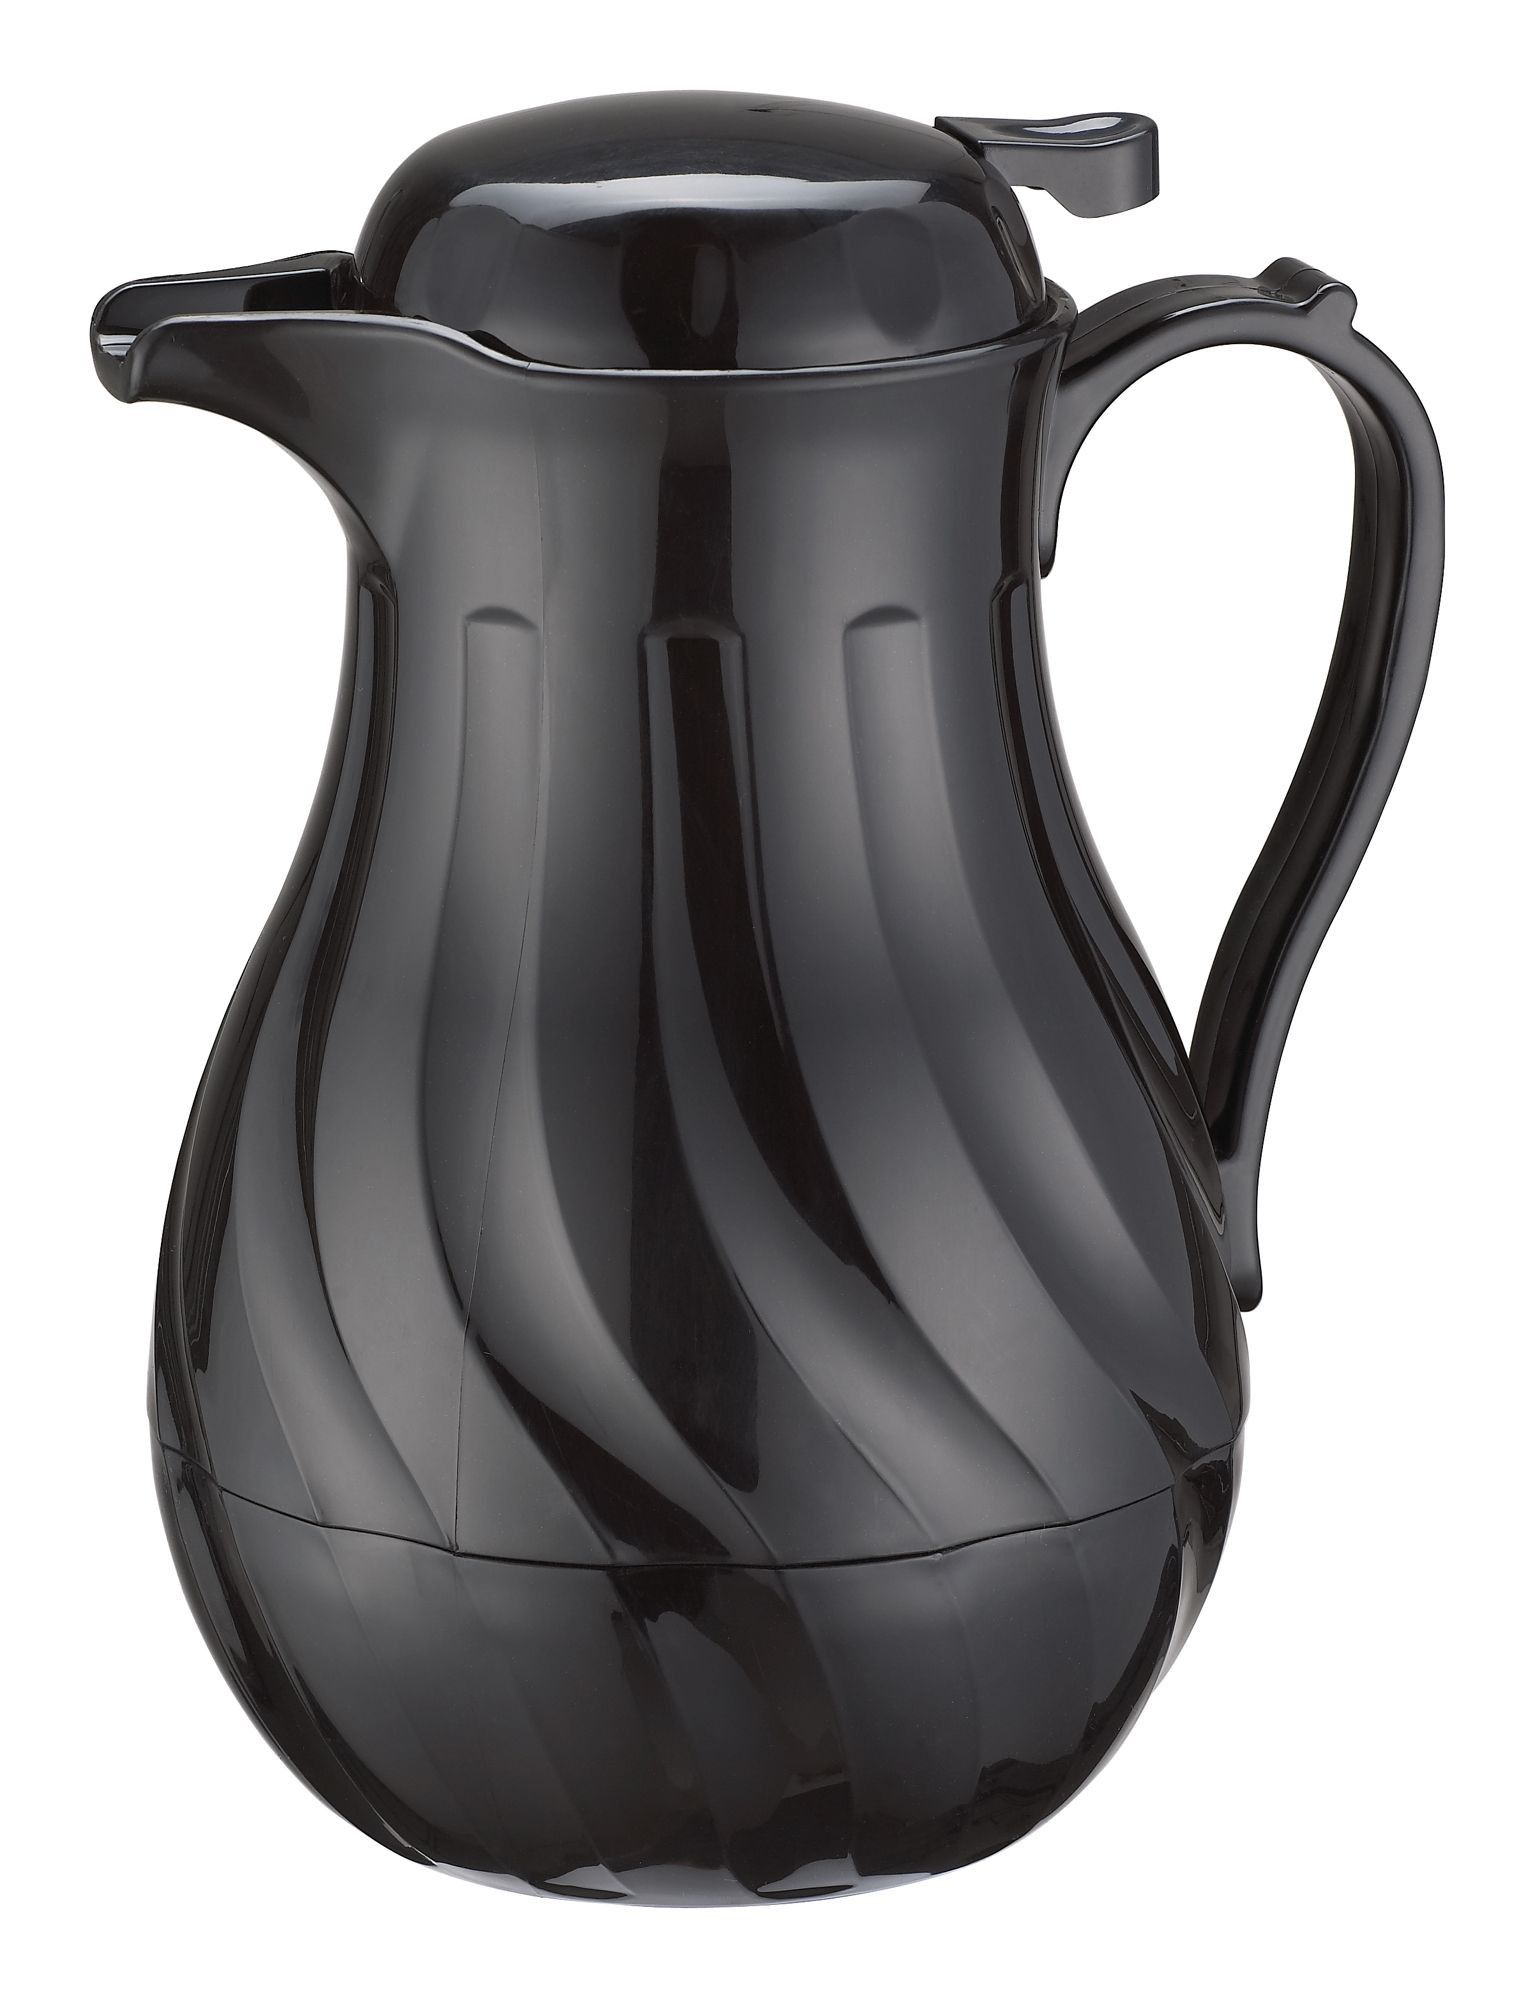 Winco VSW-20K Black Insulated Swirl Design Beverage Server 20 oz.